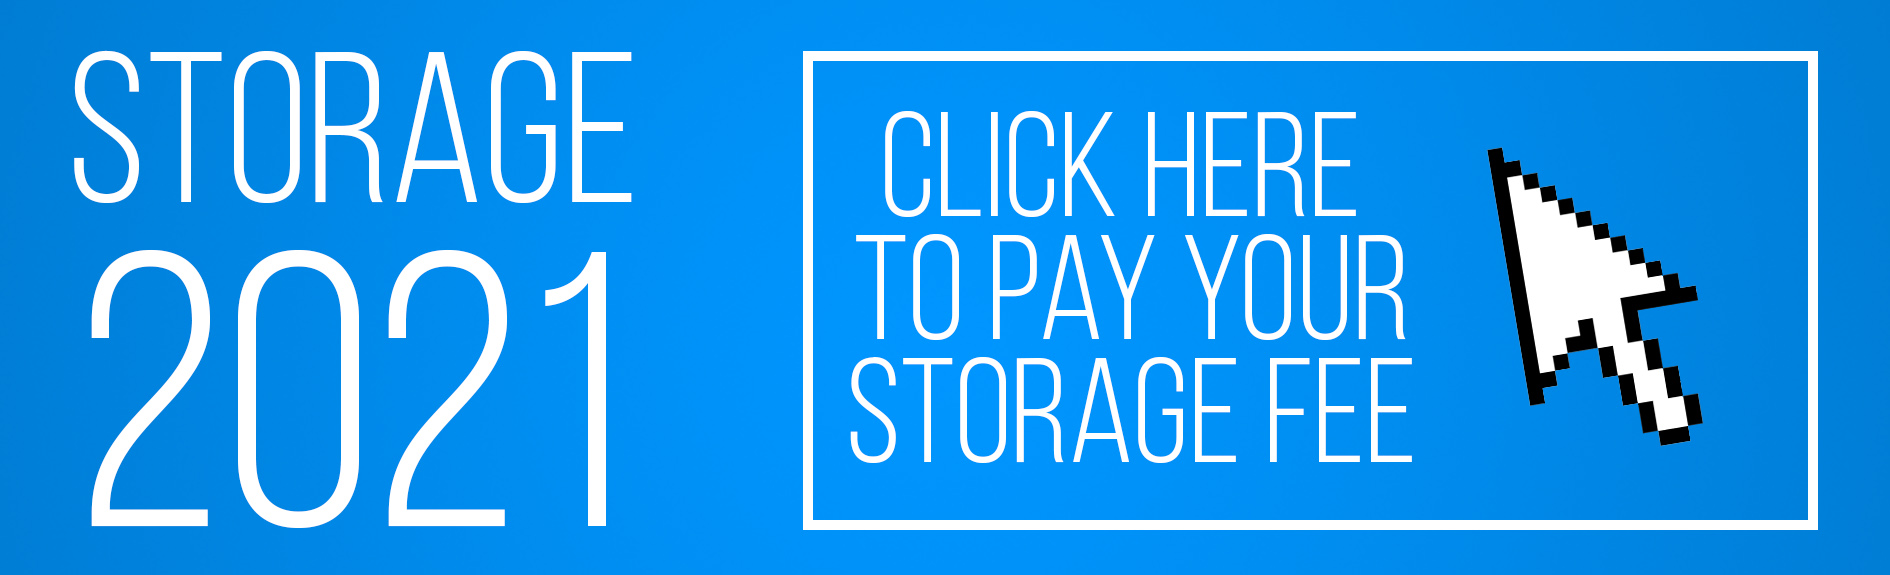 Storage, more when you store